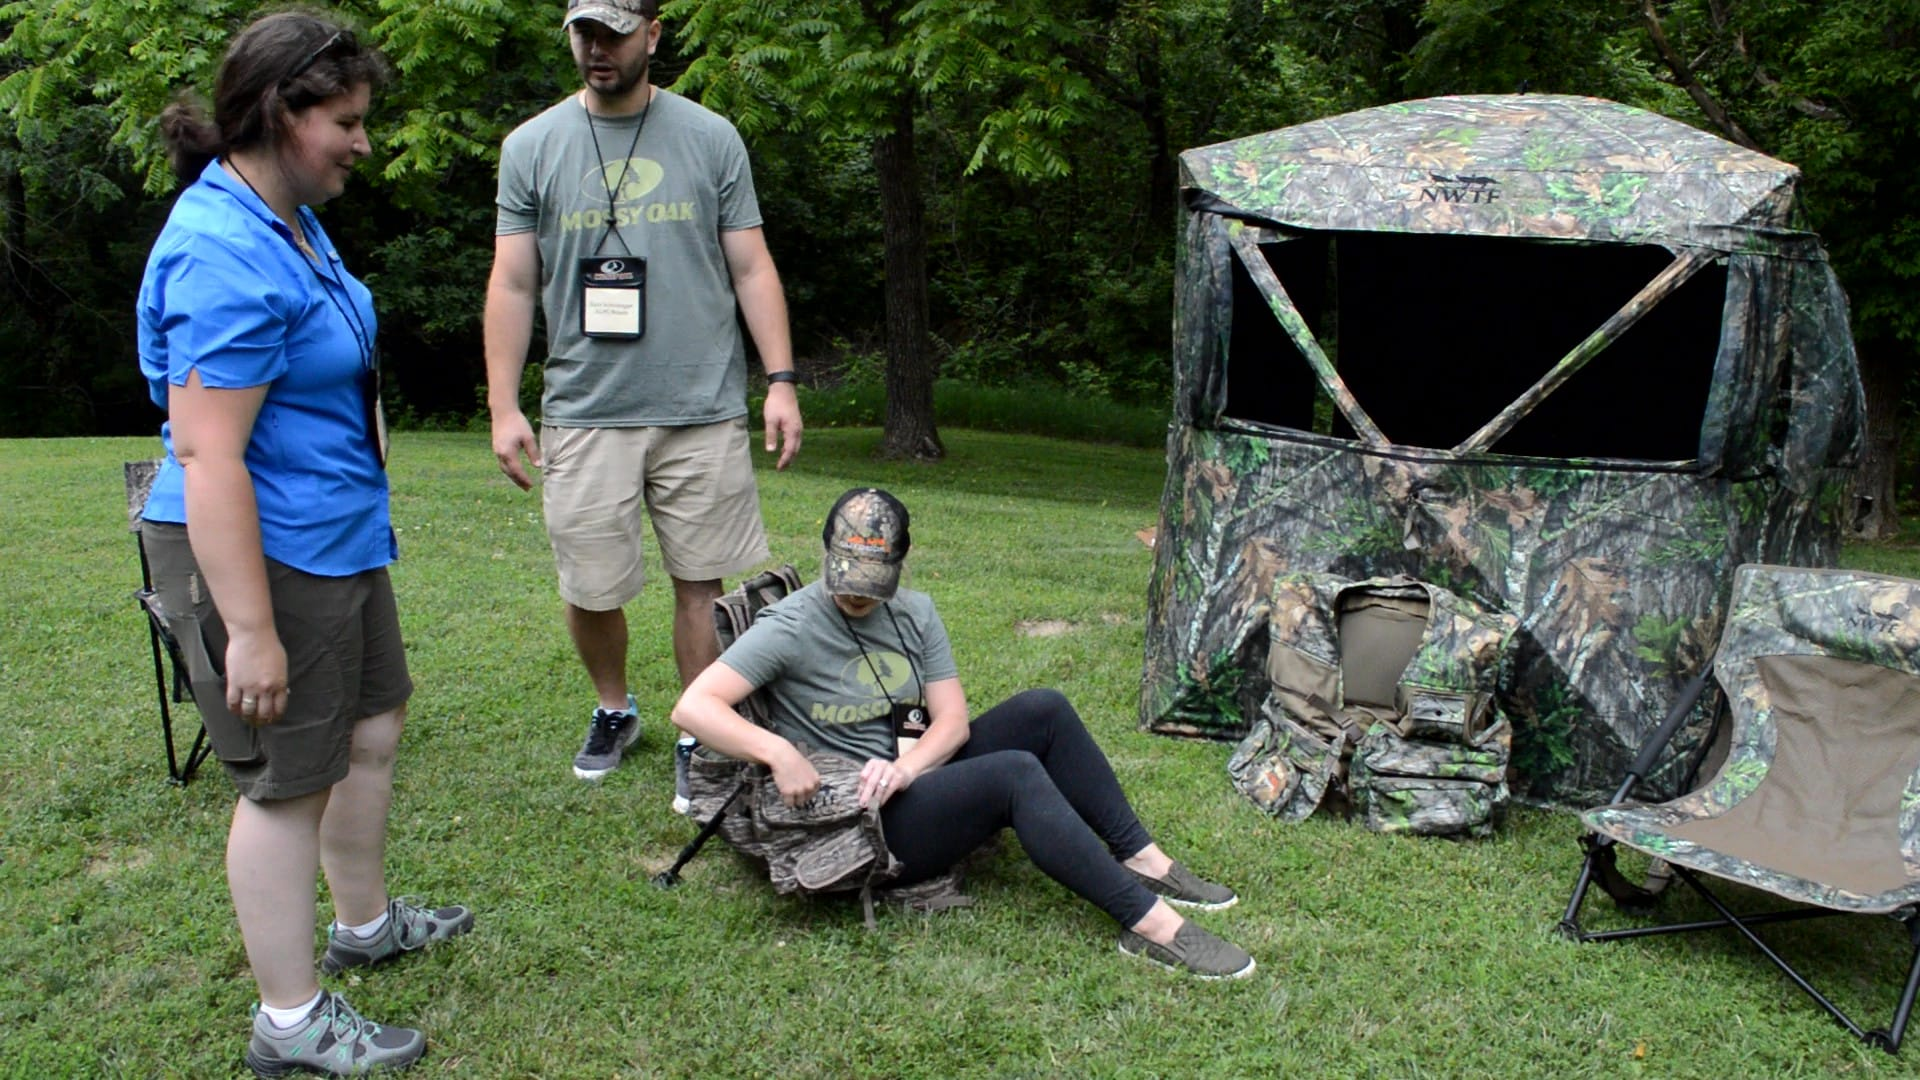 Zach and Sarah from Alpz Brands show off their NWTF vests and blinds for turkey hunters. Here, Sarah demonstates the comfort of the Grand Slam vest, built with a removeable kickstand frame, adjustable legs, and a foldaway padded seat. (Photo: Kristin Alberts)